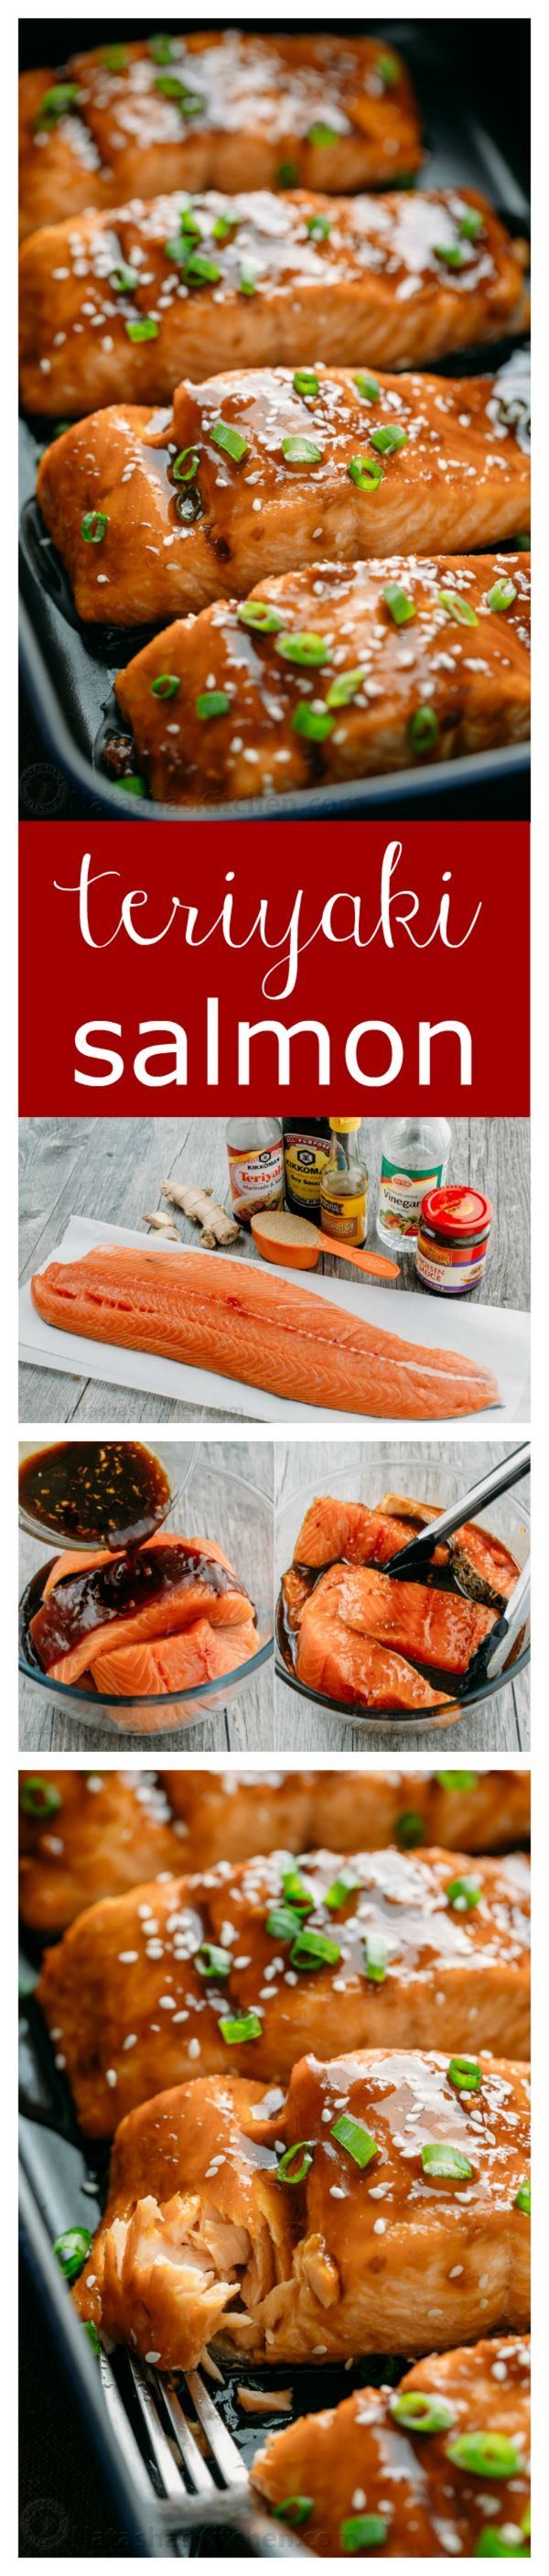 This teriyaki salmon recipe is a winner! Simple ingredients and no lengthy marinating needed. A flaky, juicy and delicious teriyaki glazed salmon recipe. #salmon #salmonrecipes #teriyakisalmon